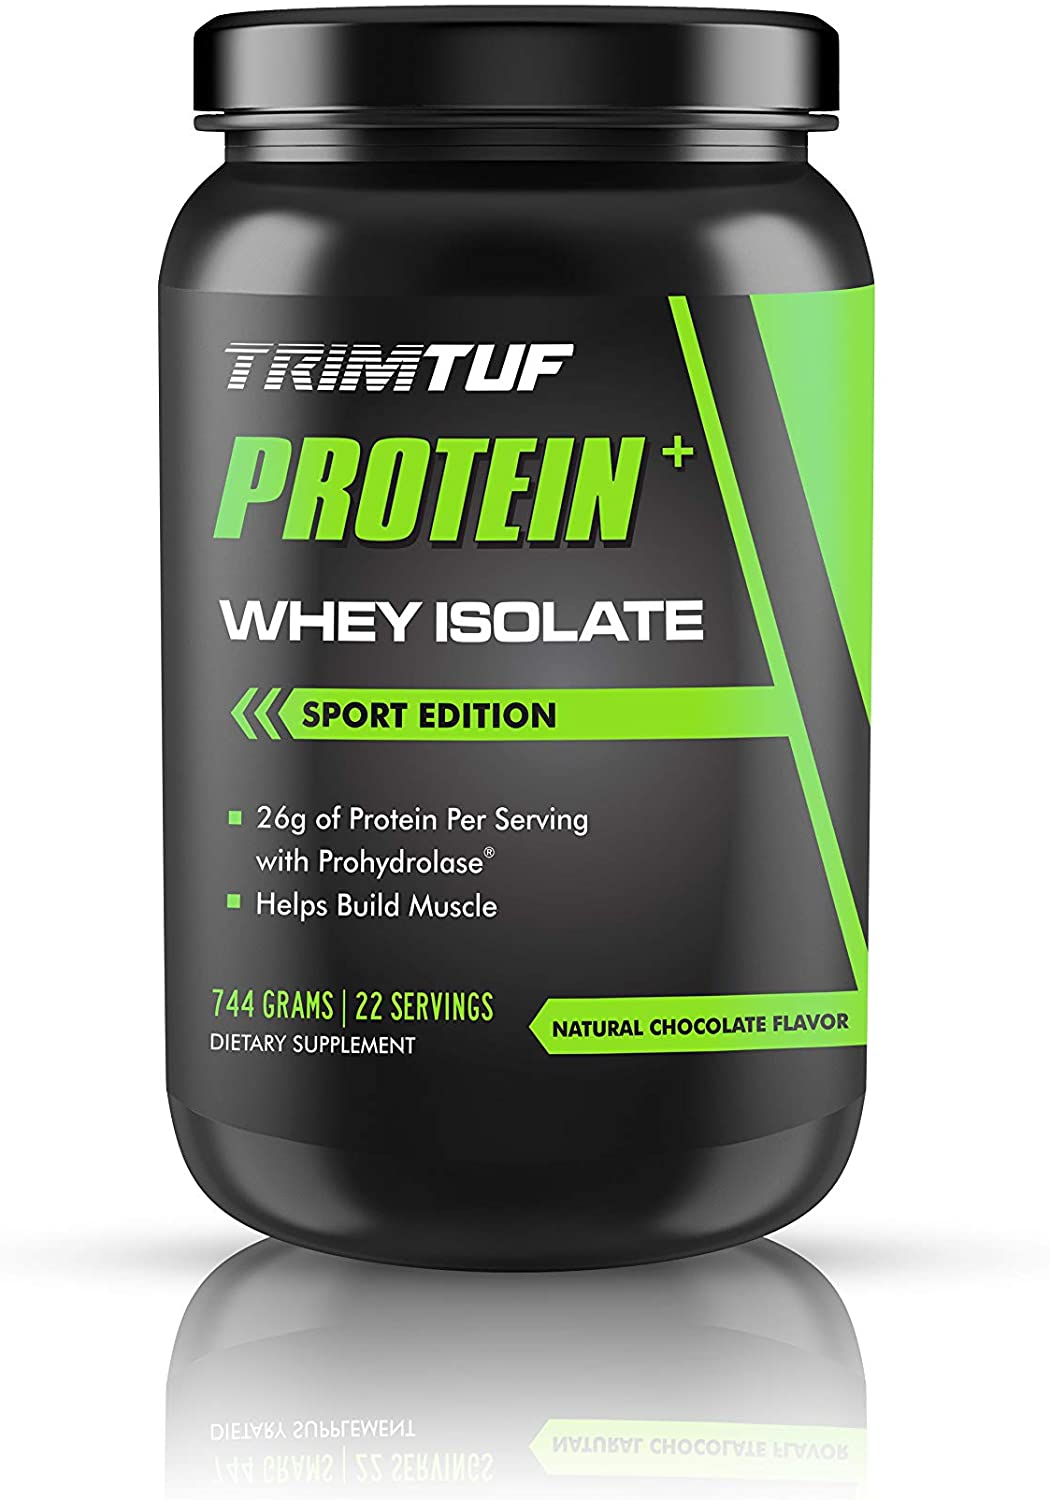 TRIMTUF Whey Protein Isolate Plus ProHydrolase® - Premium Filtered Highest Quality Protein - Great Taste/Low Calories - 100% Absorption Into Muscles - 22 Top Quality Servings